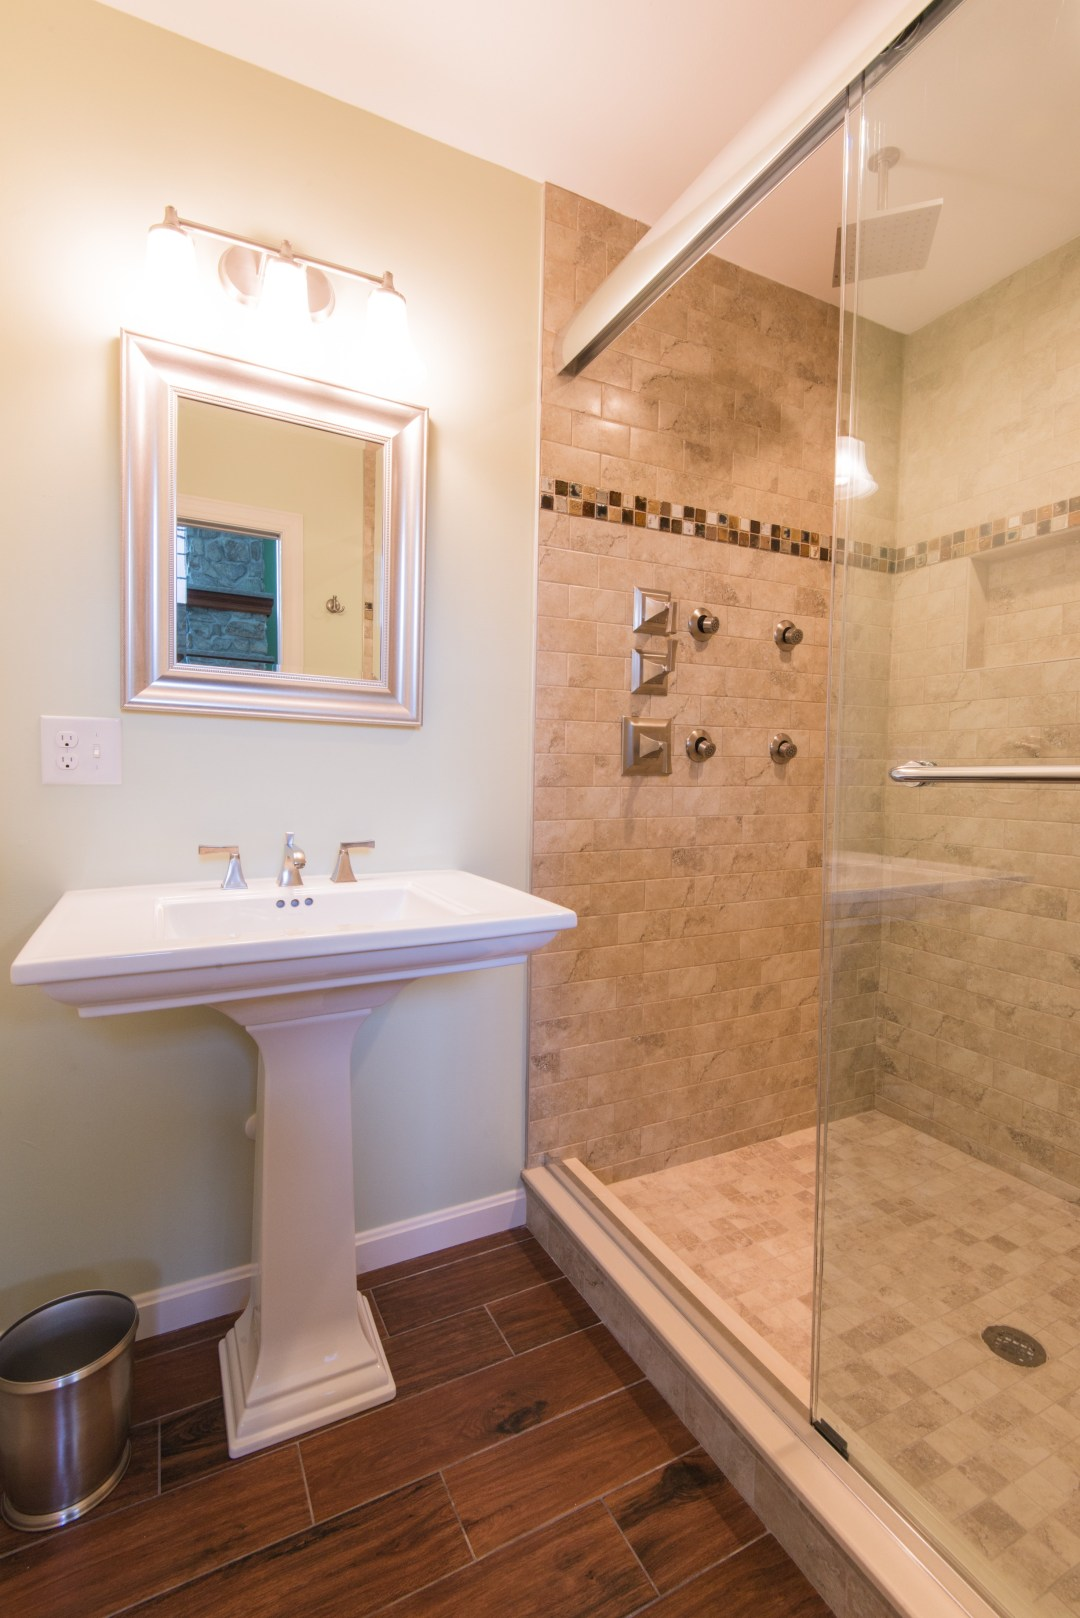 Bathroom Remodel in October Glory, Bear Trap Dunes, Ocean View DE with Subway Wall Tiles and Ceiling Mount Shower Head